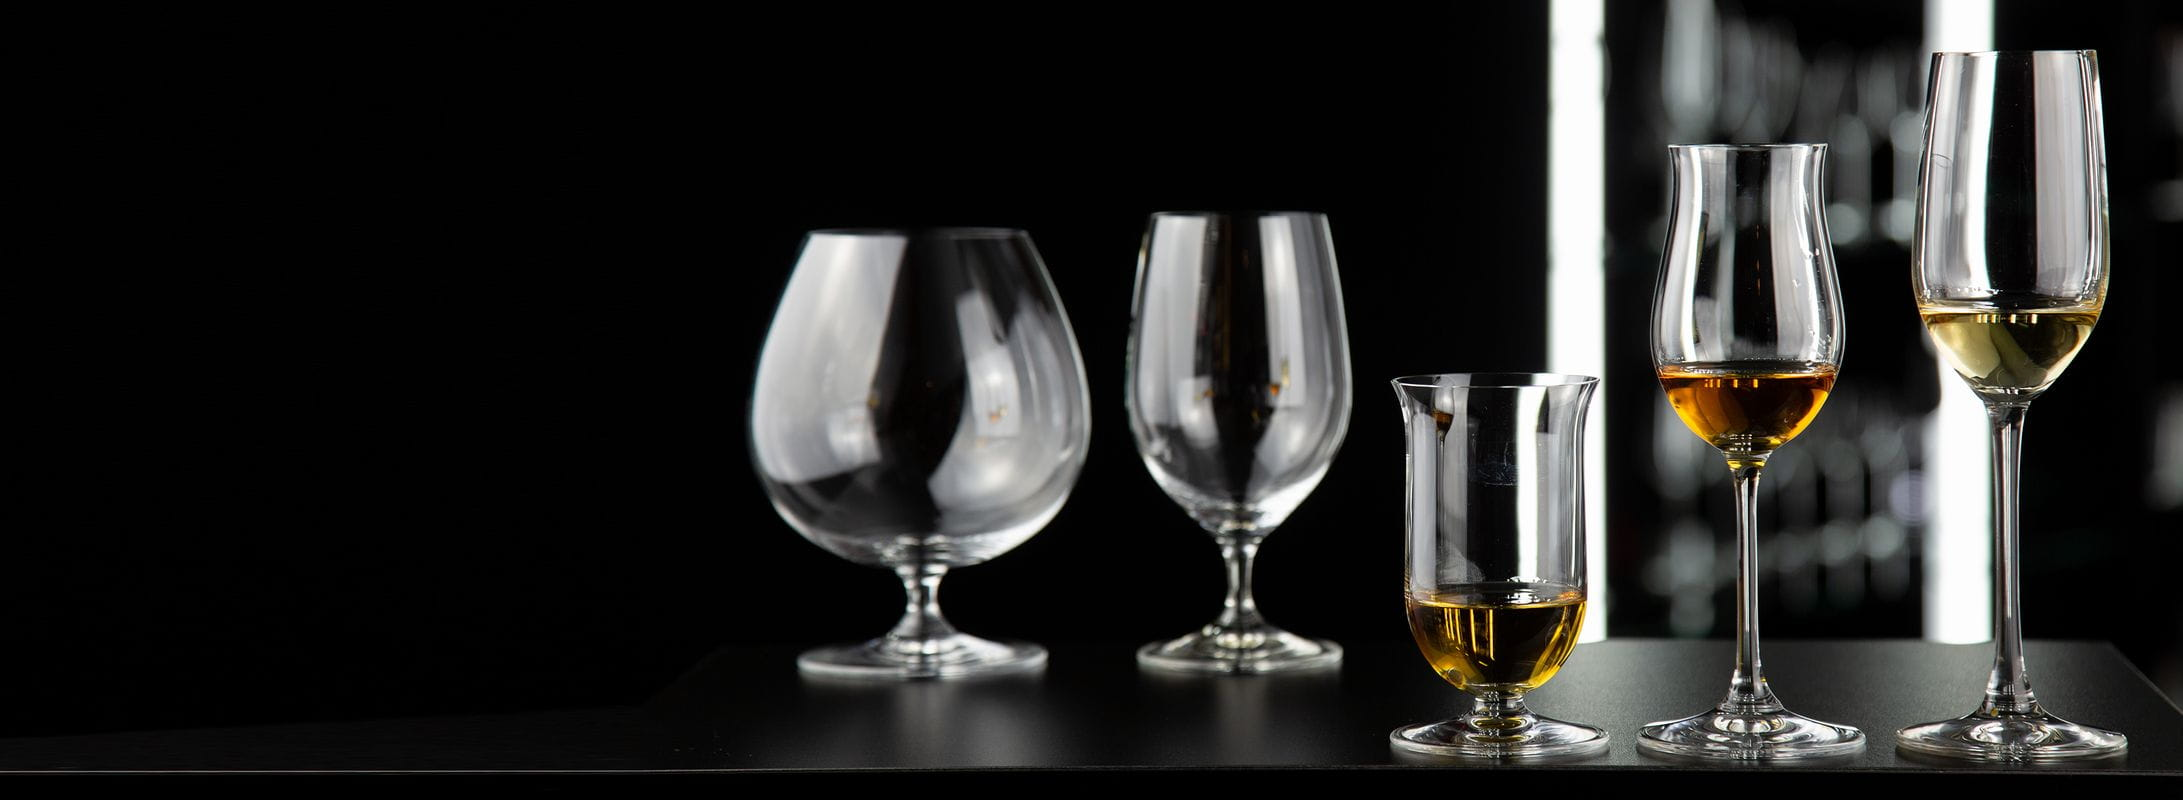 The RIEDEL Bar collections on a black table.